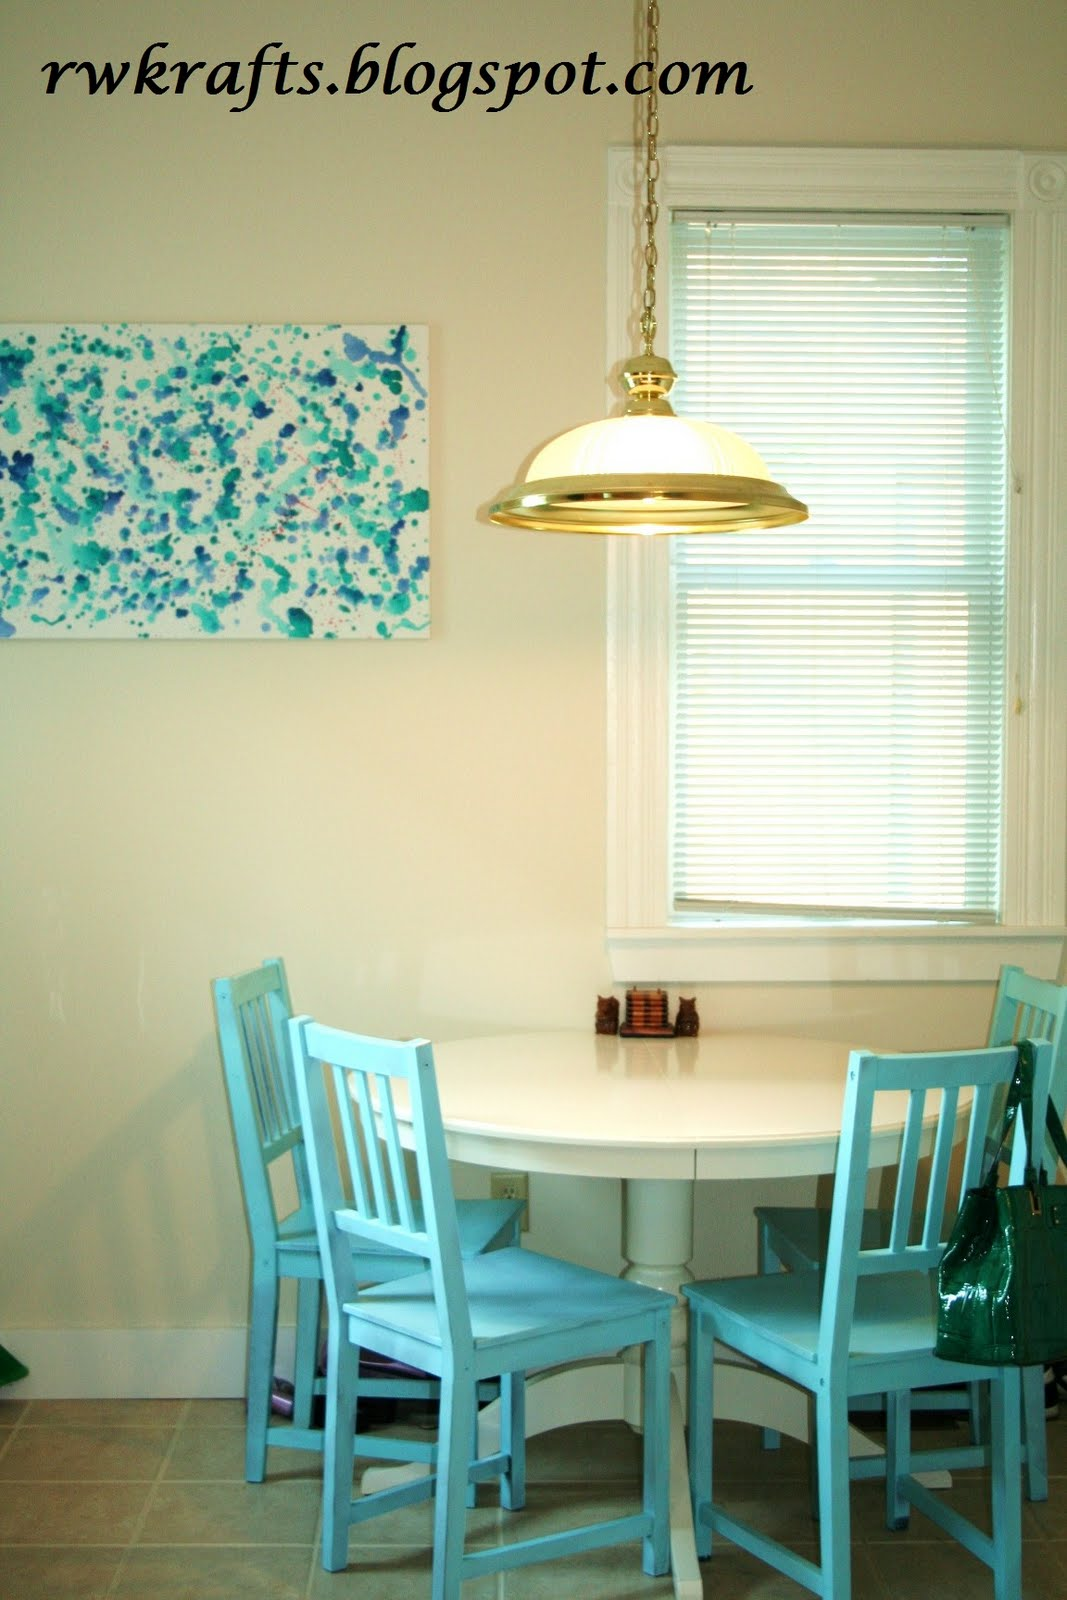 Turquoise kitchen walls like the chair color too decorating - I Love My New Kitchen And The Hubby Actually Really Likes It Too Why Do Men Doubt Our Decorating Skills I Think Painting The Chairs Such A Bold